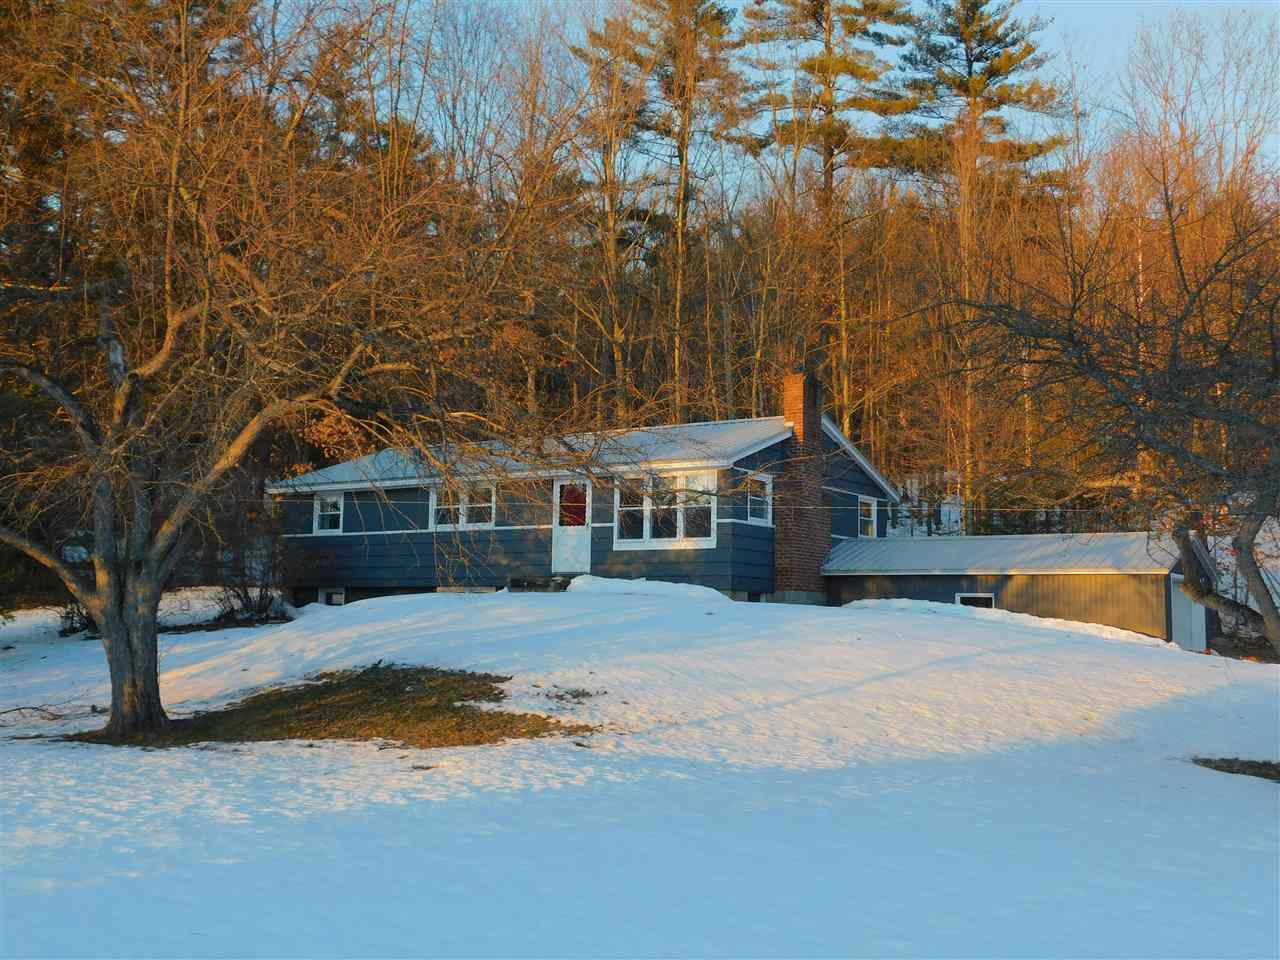 MLS 4730129: 25 Crescent, Plymouth NH